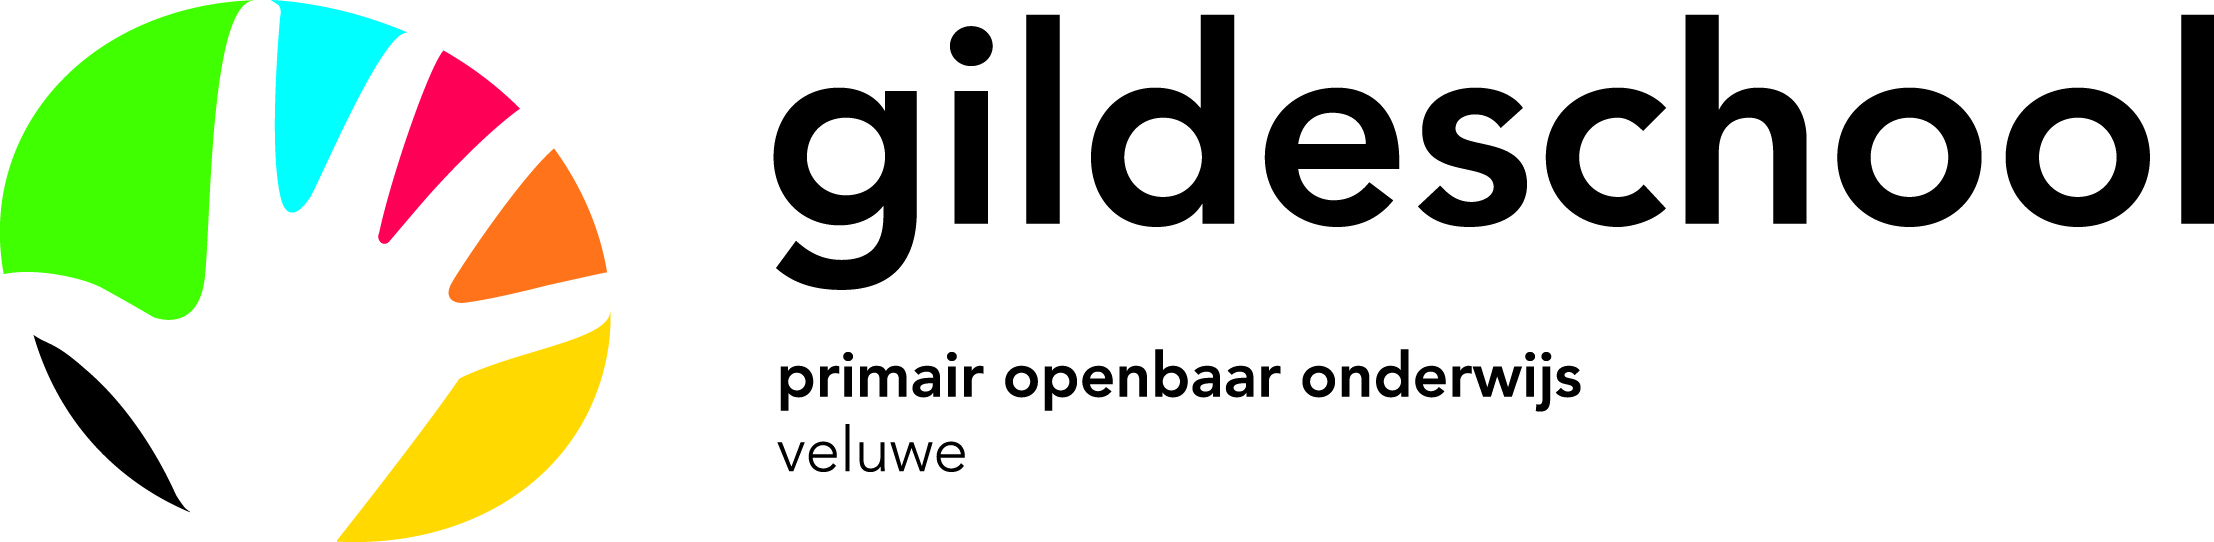 LOGO_GILDESCHOOL_CMYK